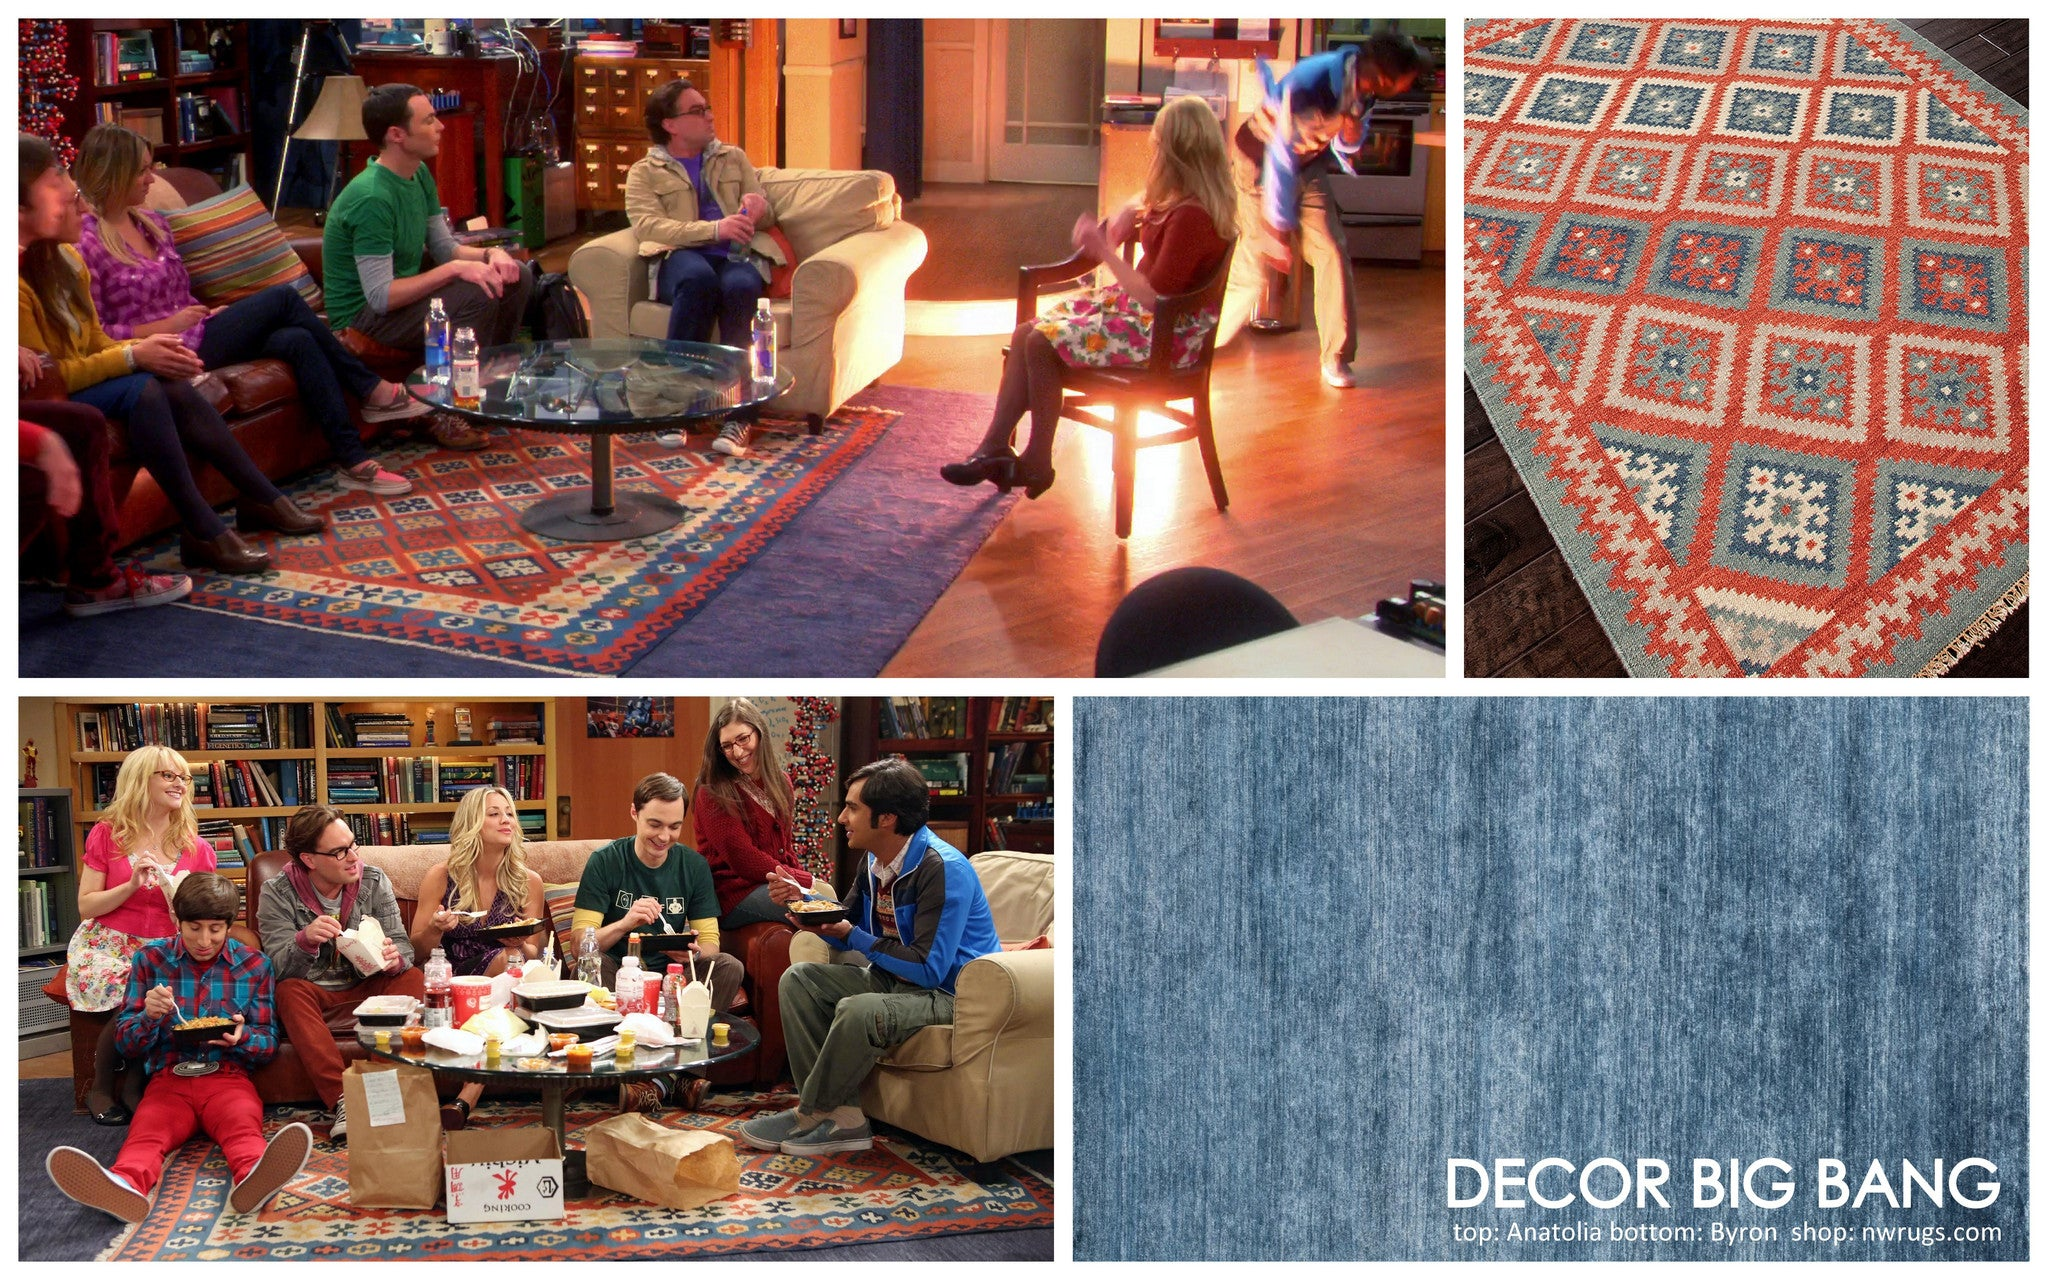 DECOR BIG BANG; On the Set of The Big Bang Theory